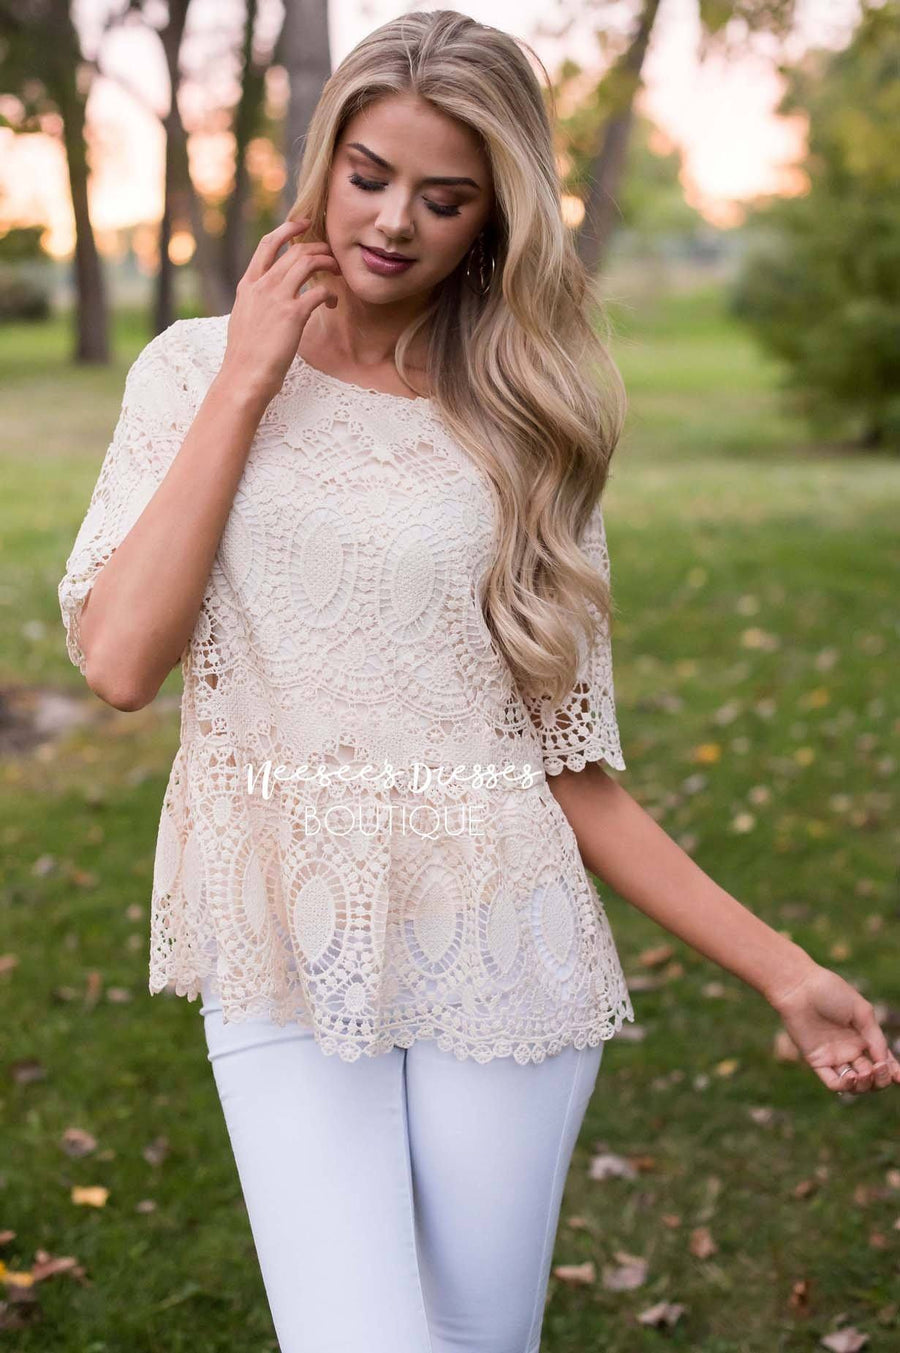 You're So Enchanting Lace Top